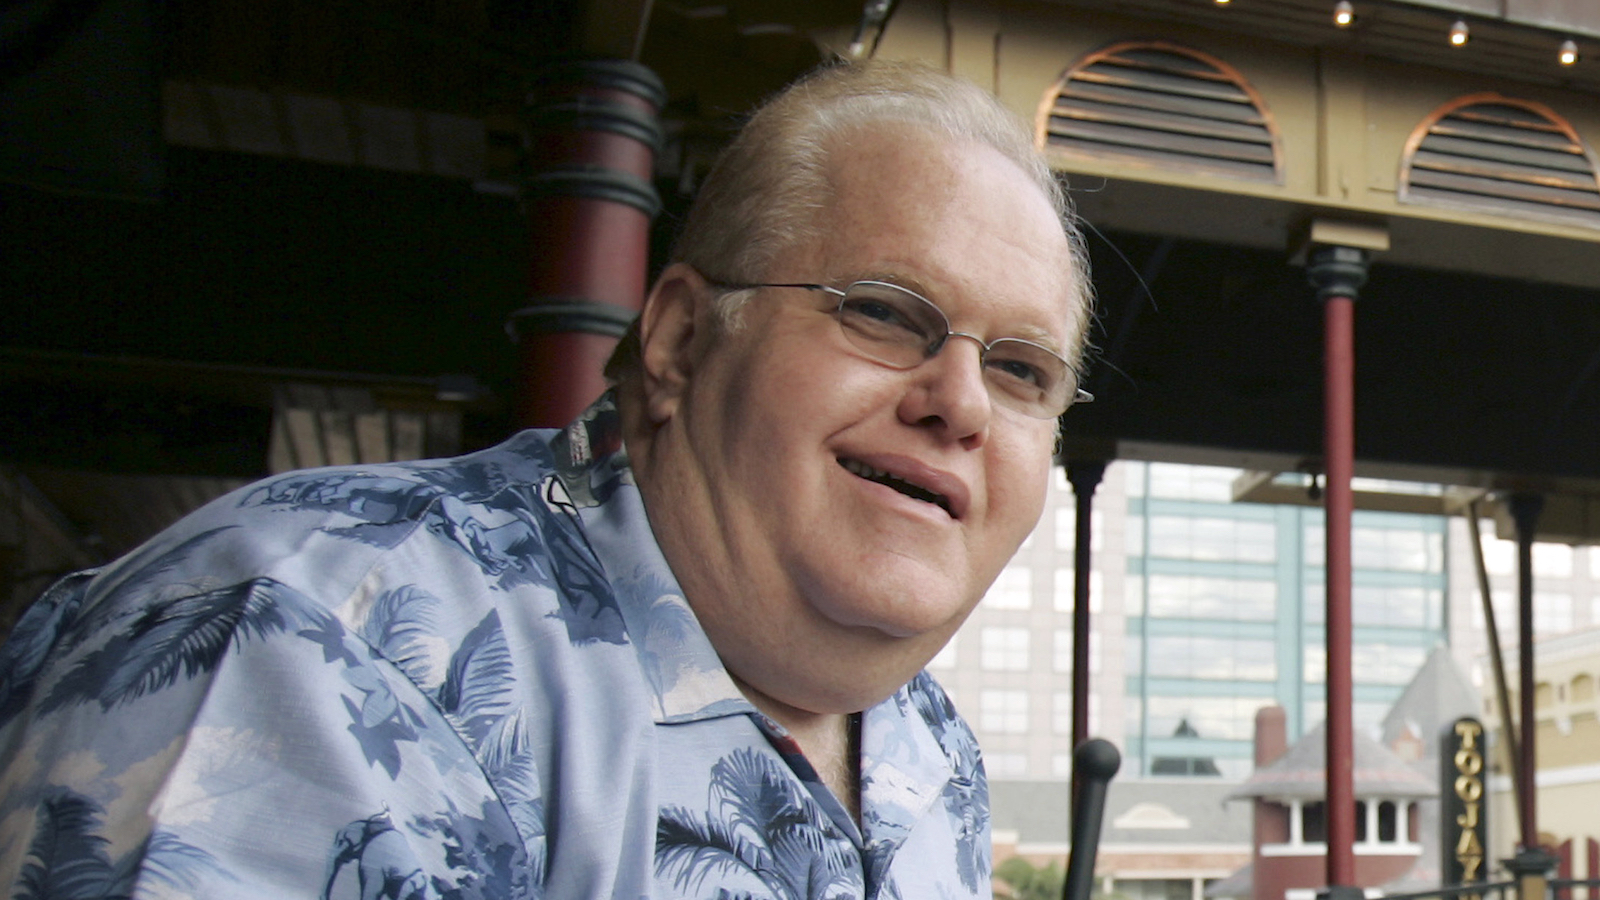 **FILE** Lou Pearlman poses outside his office's at Church Street Station in Orlando, Fla., in this  Oct. 27, 2006 file photo.   The creator of the Backstreet Boys and 'N Sync was indicted Wednesday, June, 27, 2007 by a federal grand jury on charges he defrauded a bank out of $20 million dollars. (AP Photo/John Raoux, FILE)